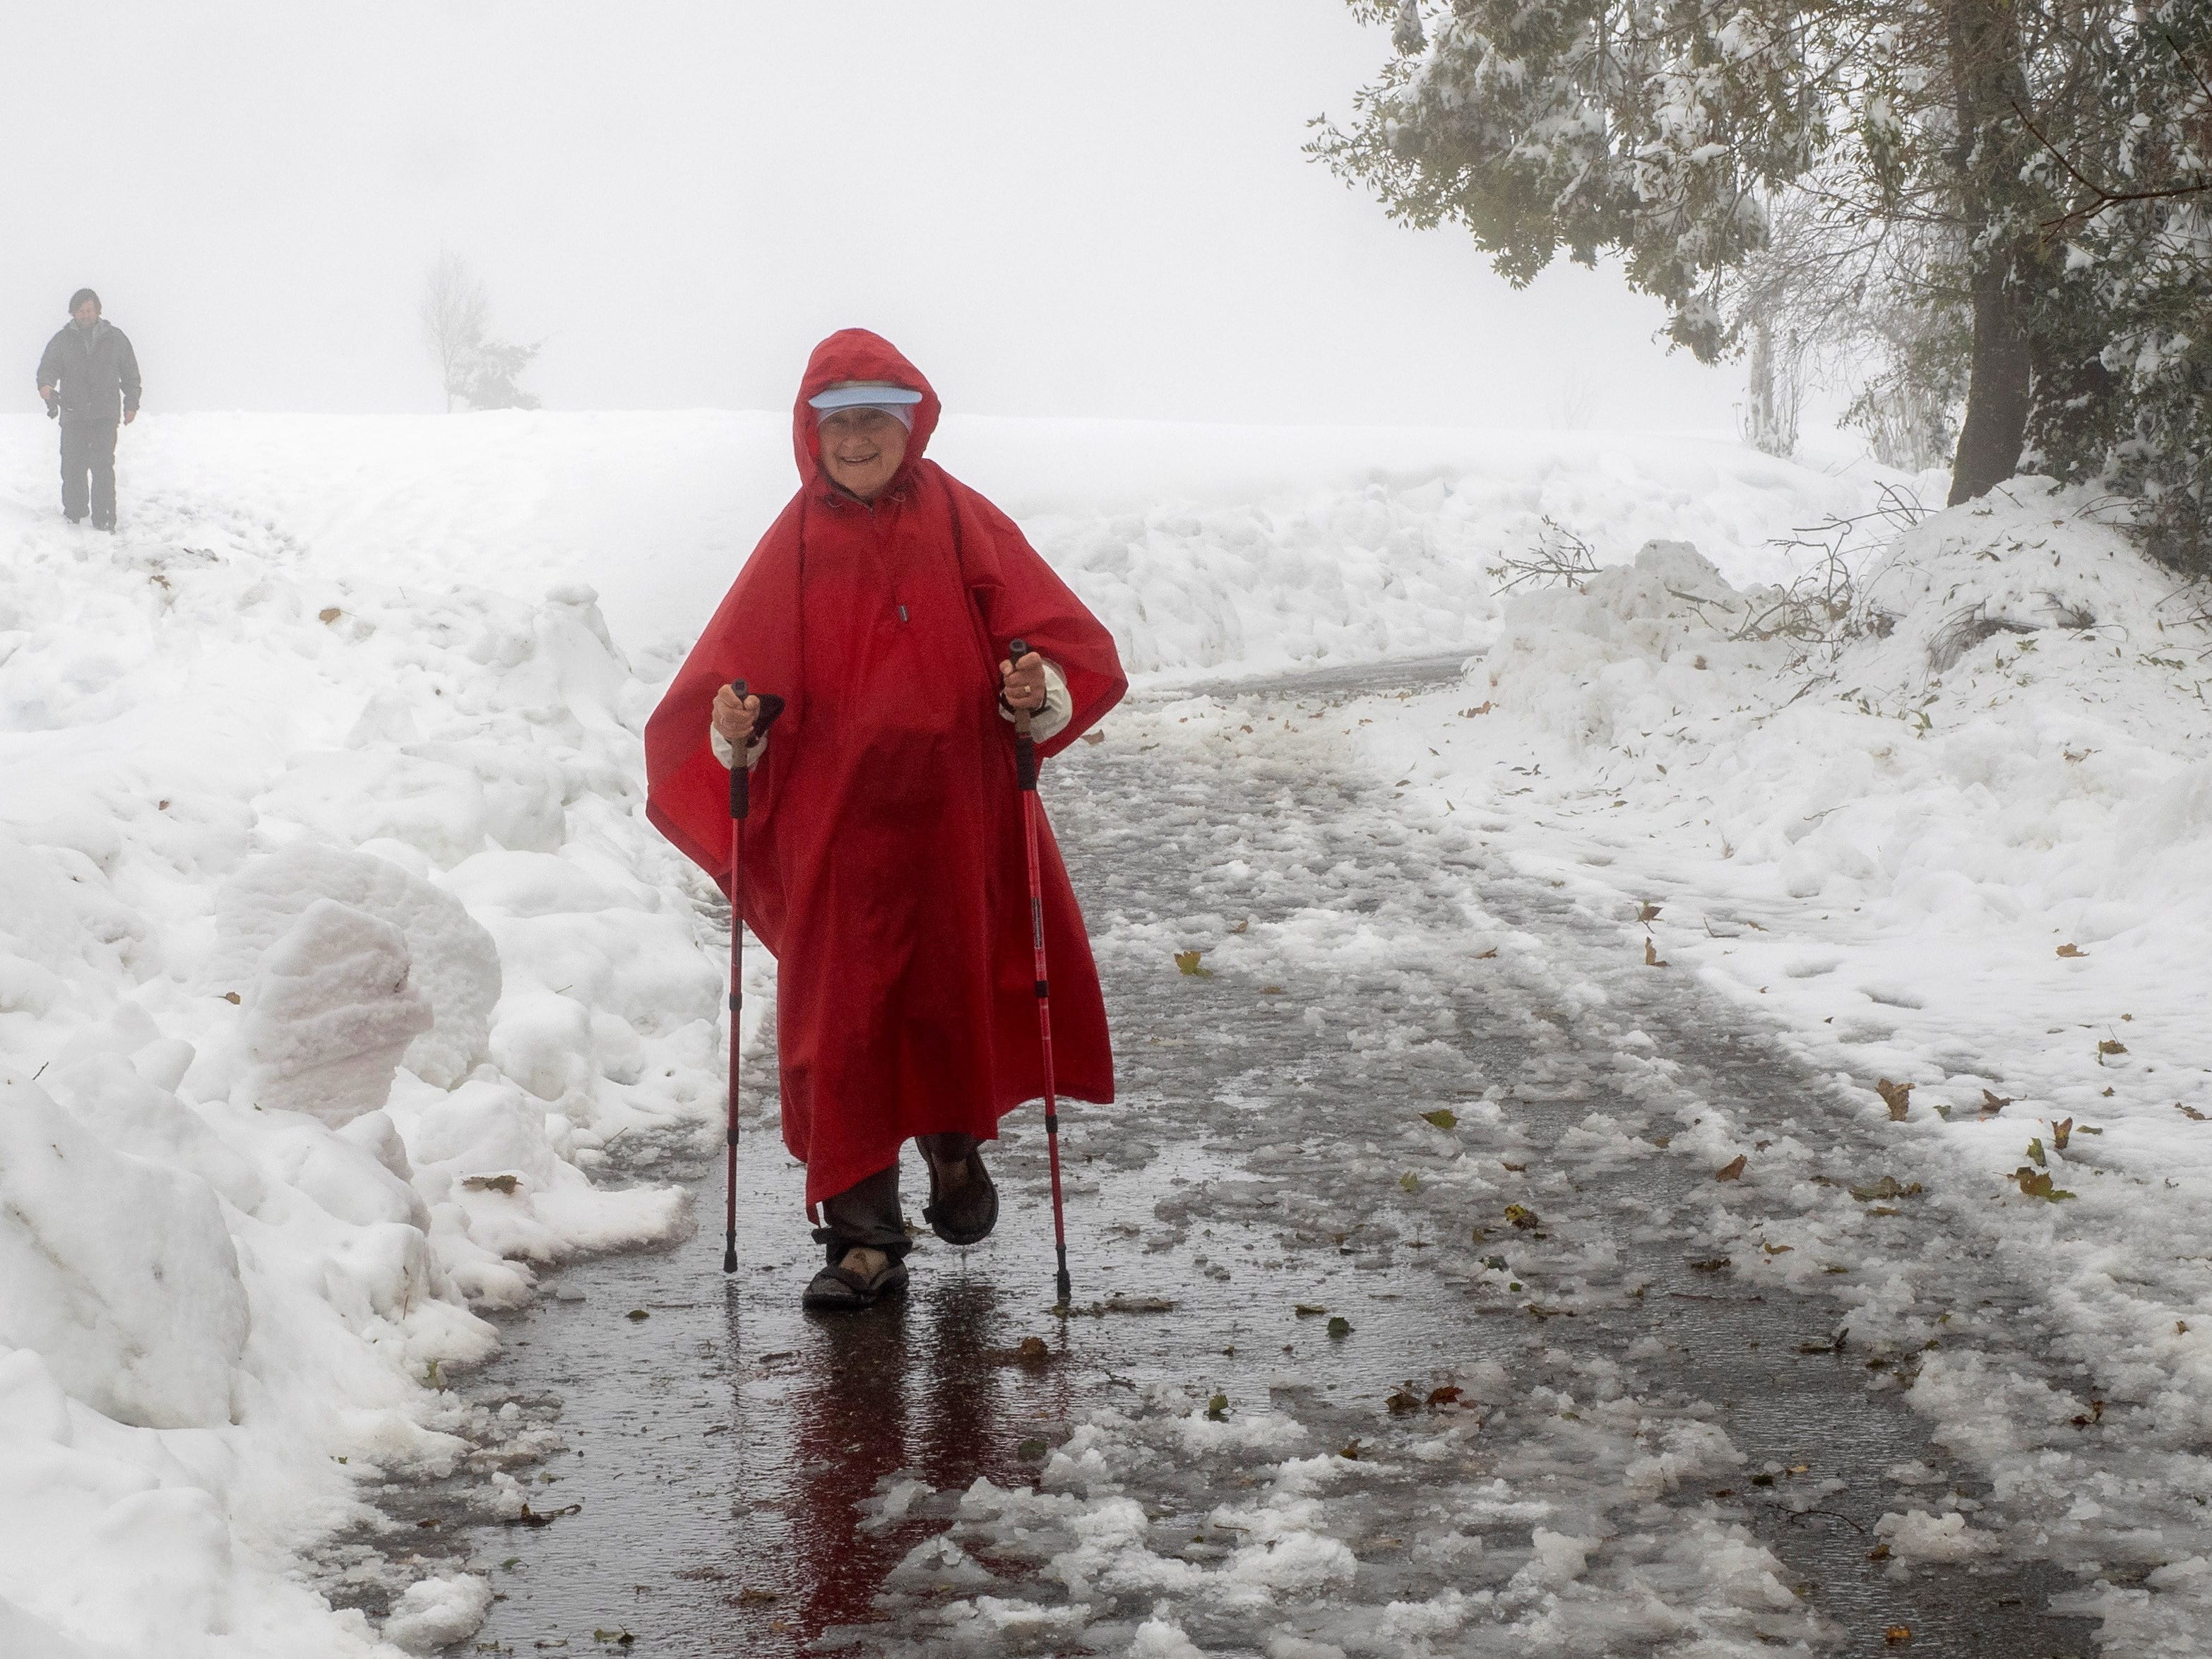 A pilgrim arrives in Pedrafita do Cebreiro village, covered with snow, in Galicia, northwestern Spain on Oct. 30, 2018.